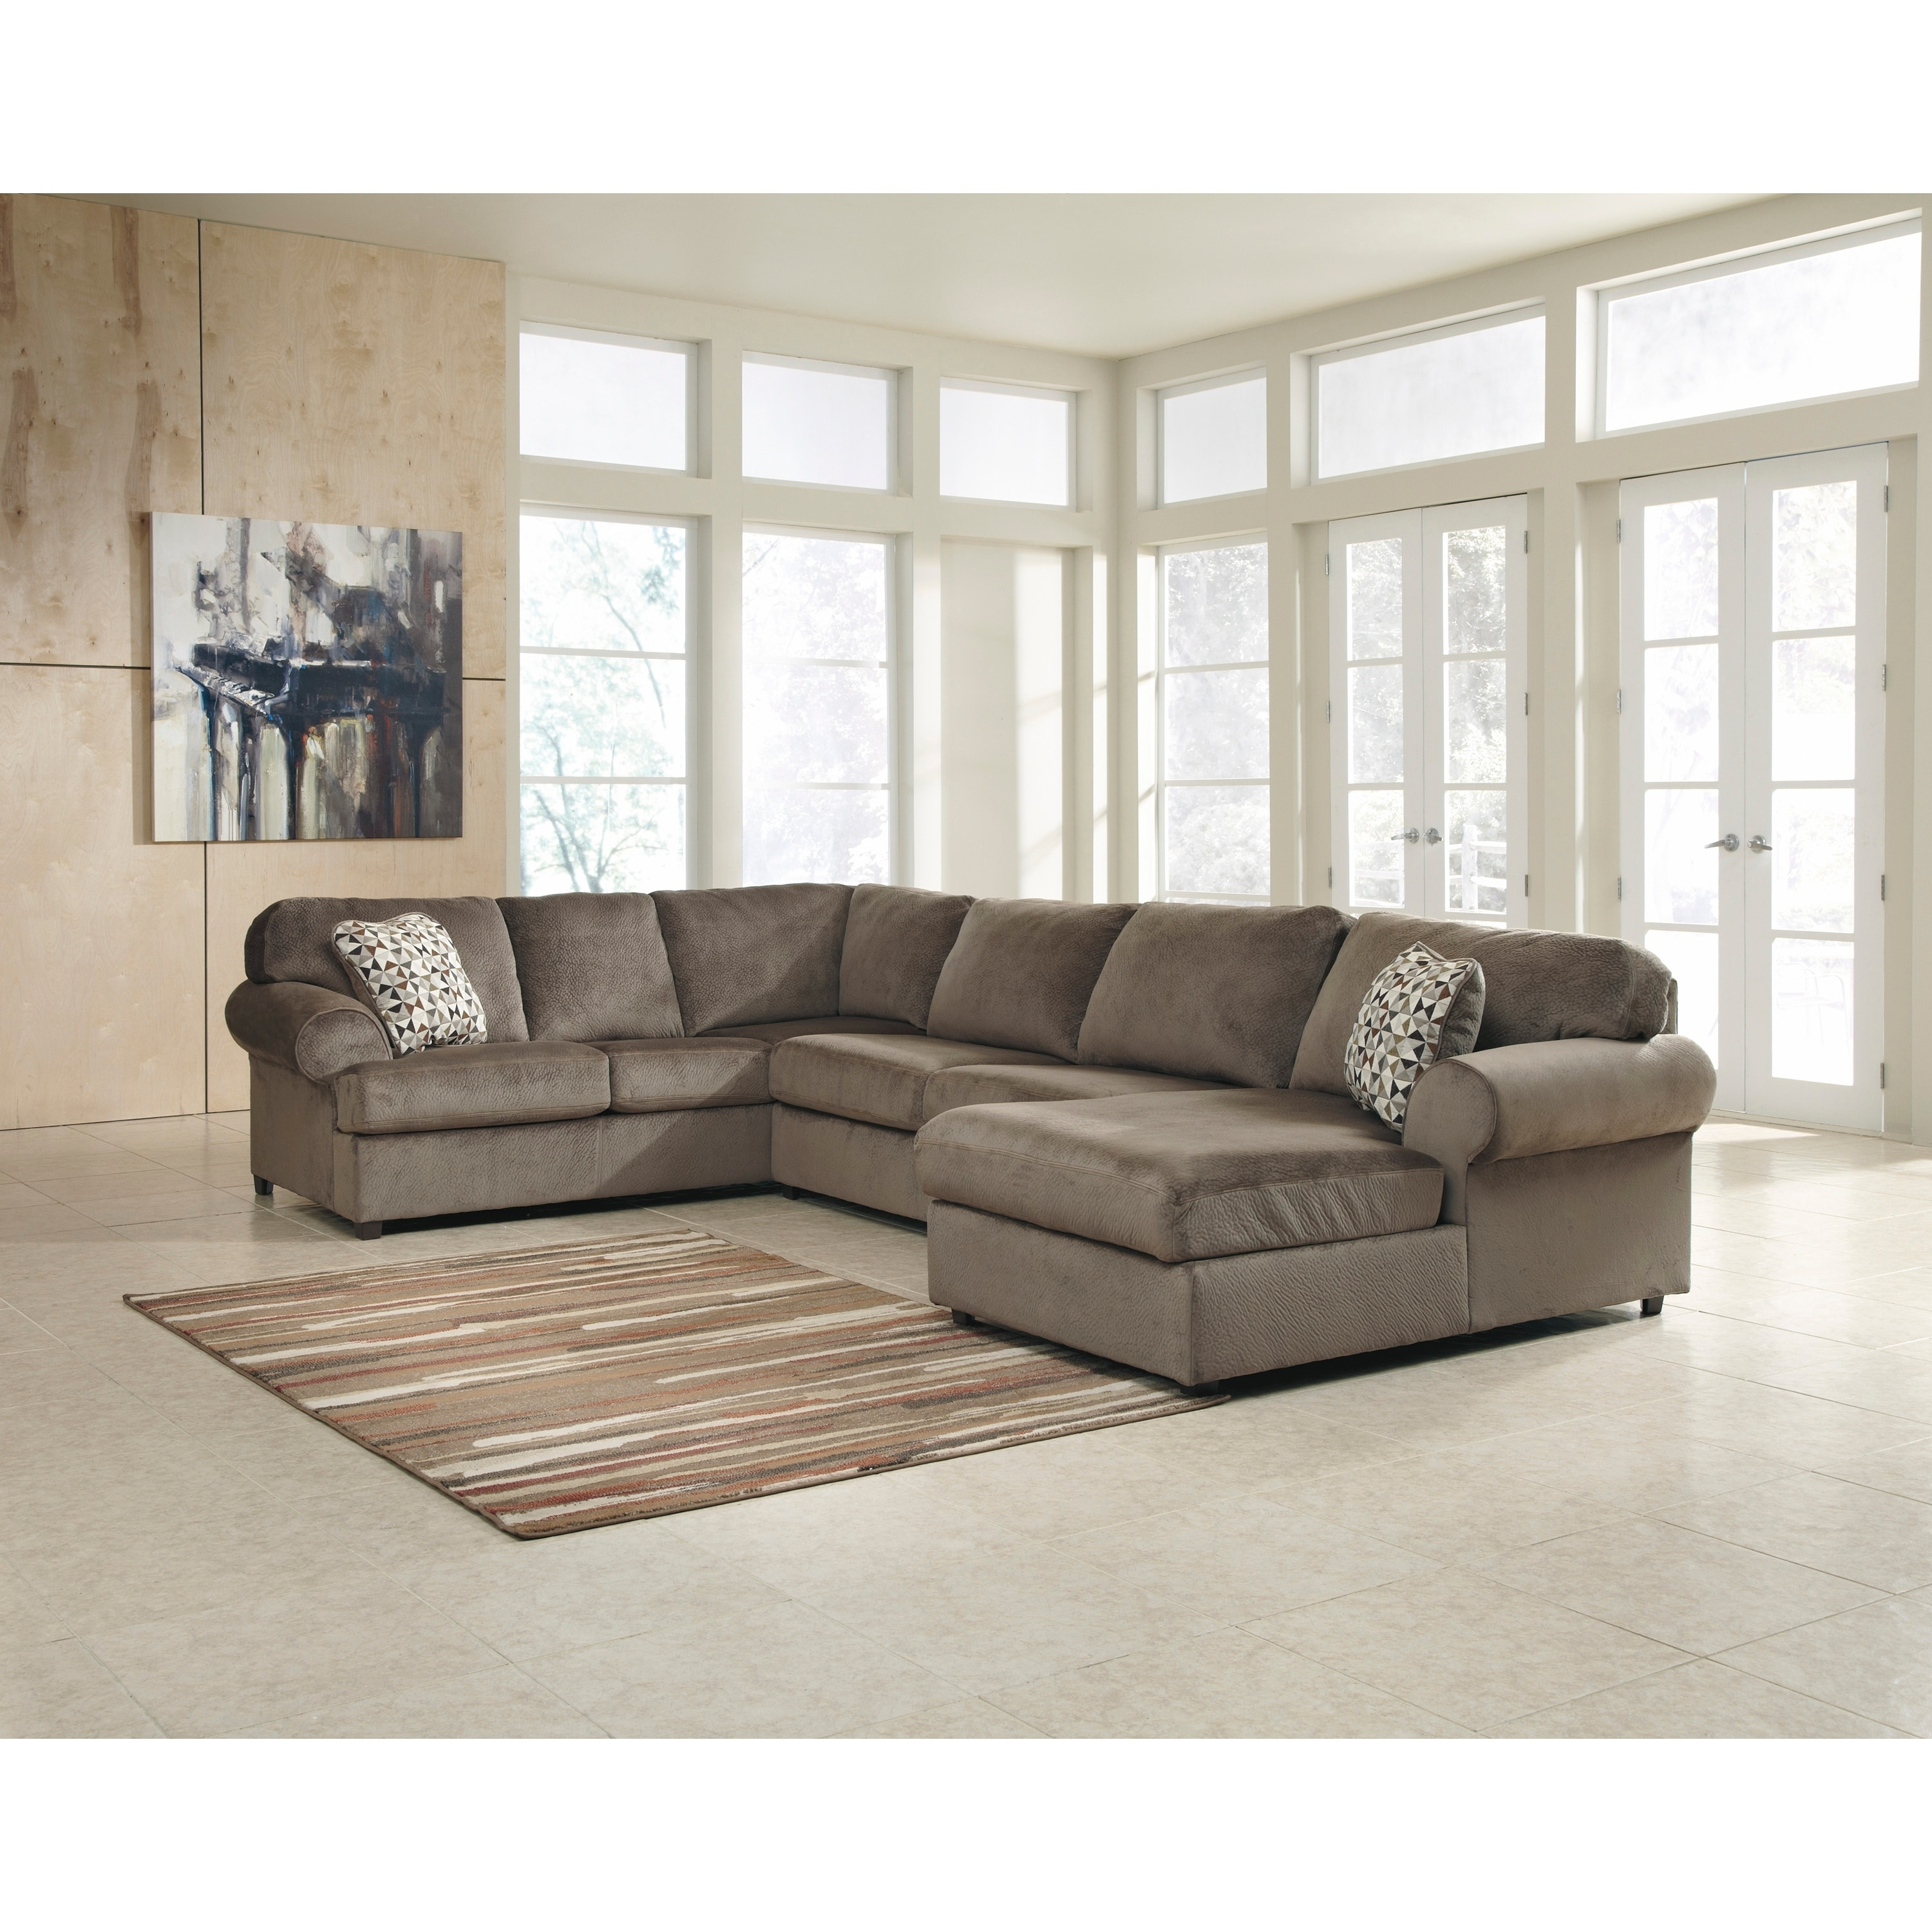 Oversized Fabric Sectional Sofa